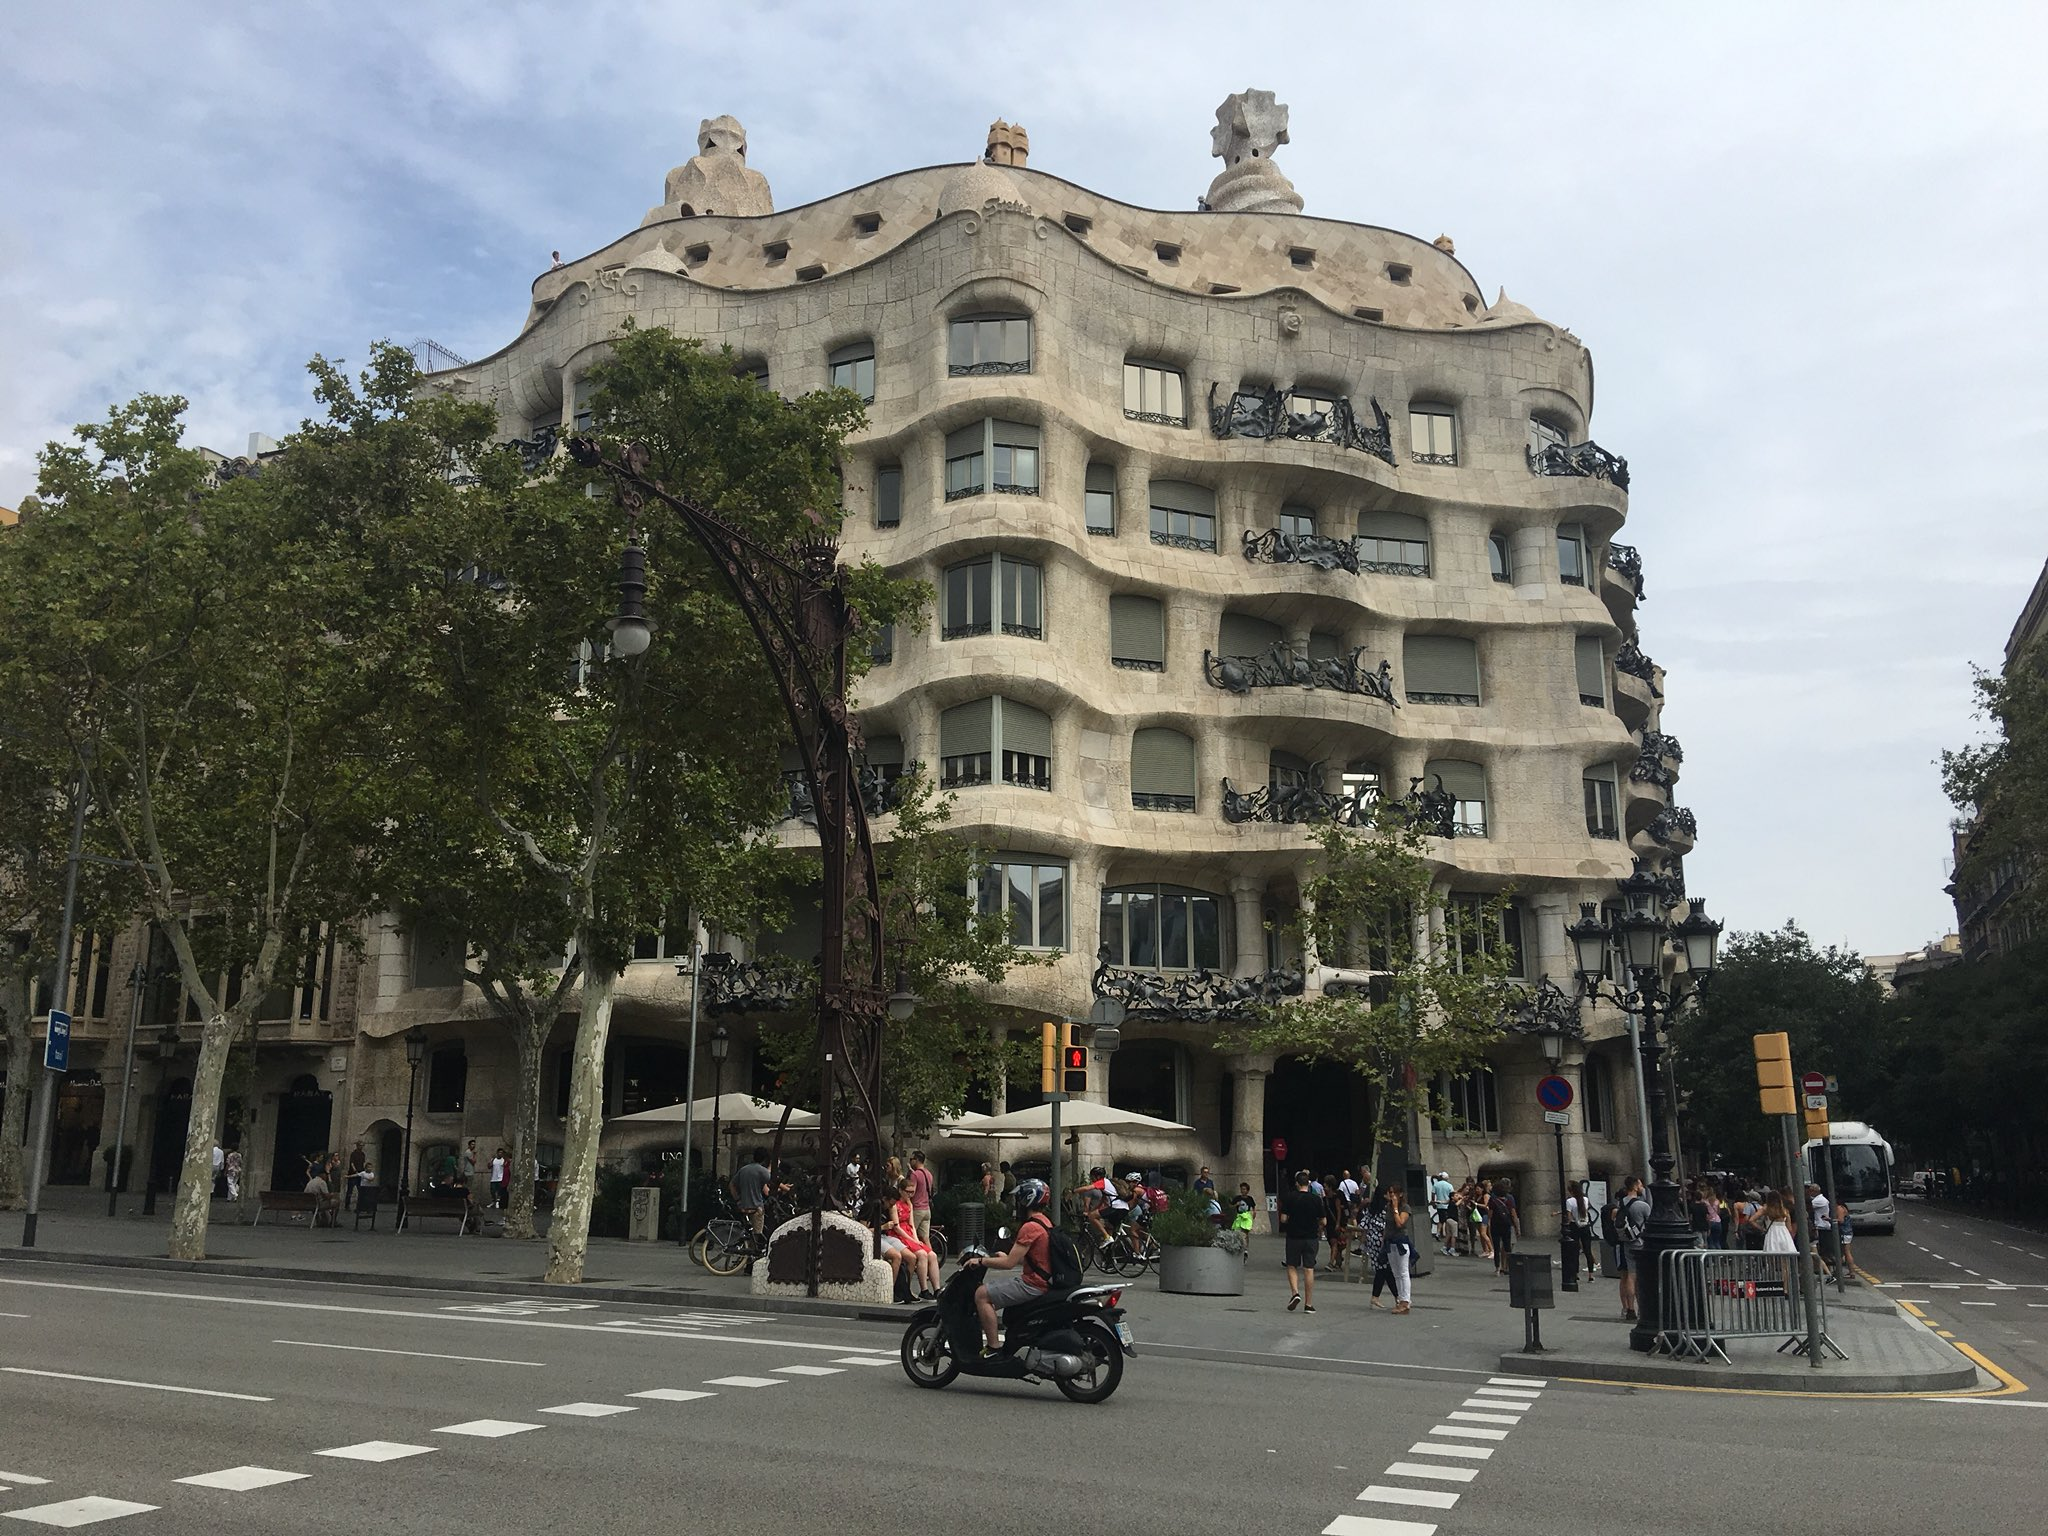 Odyssey Spain 2018, Casa Milà is a modernist building in Barcelona, Catalonia, Spain. It was the last private residence designed by architect Antoni Gaudí built between 1906 and 1912. In 1984, it was declared a World Heritage Site by UNESCO. https://t.co/CMLBKUgKuz